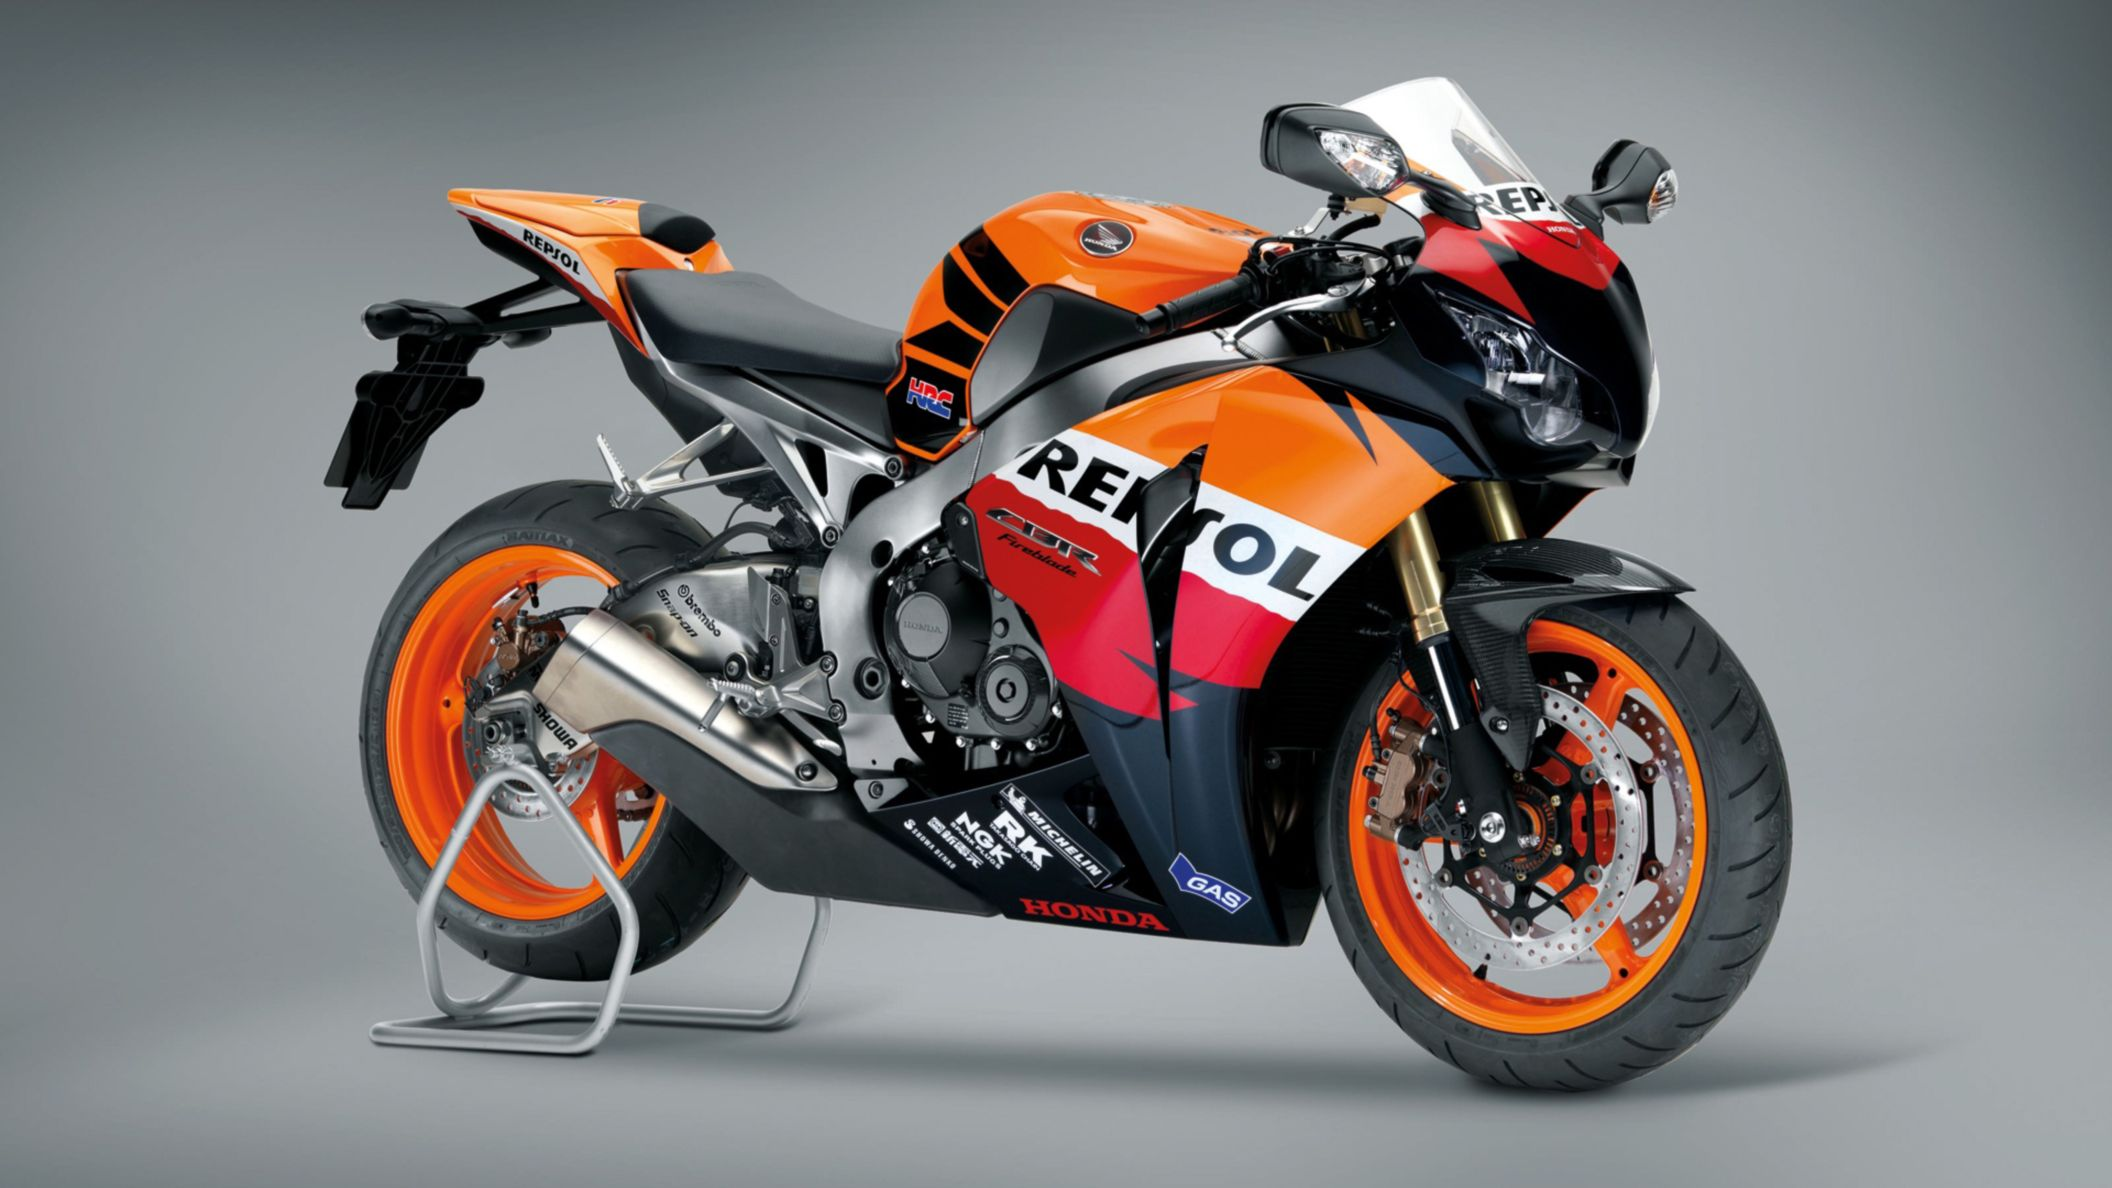 Download free HD Honda Repsol HD Wallpaper, image